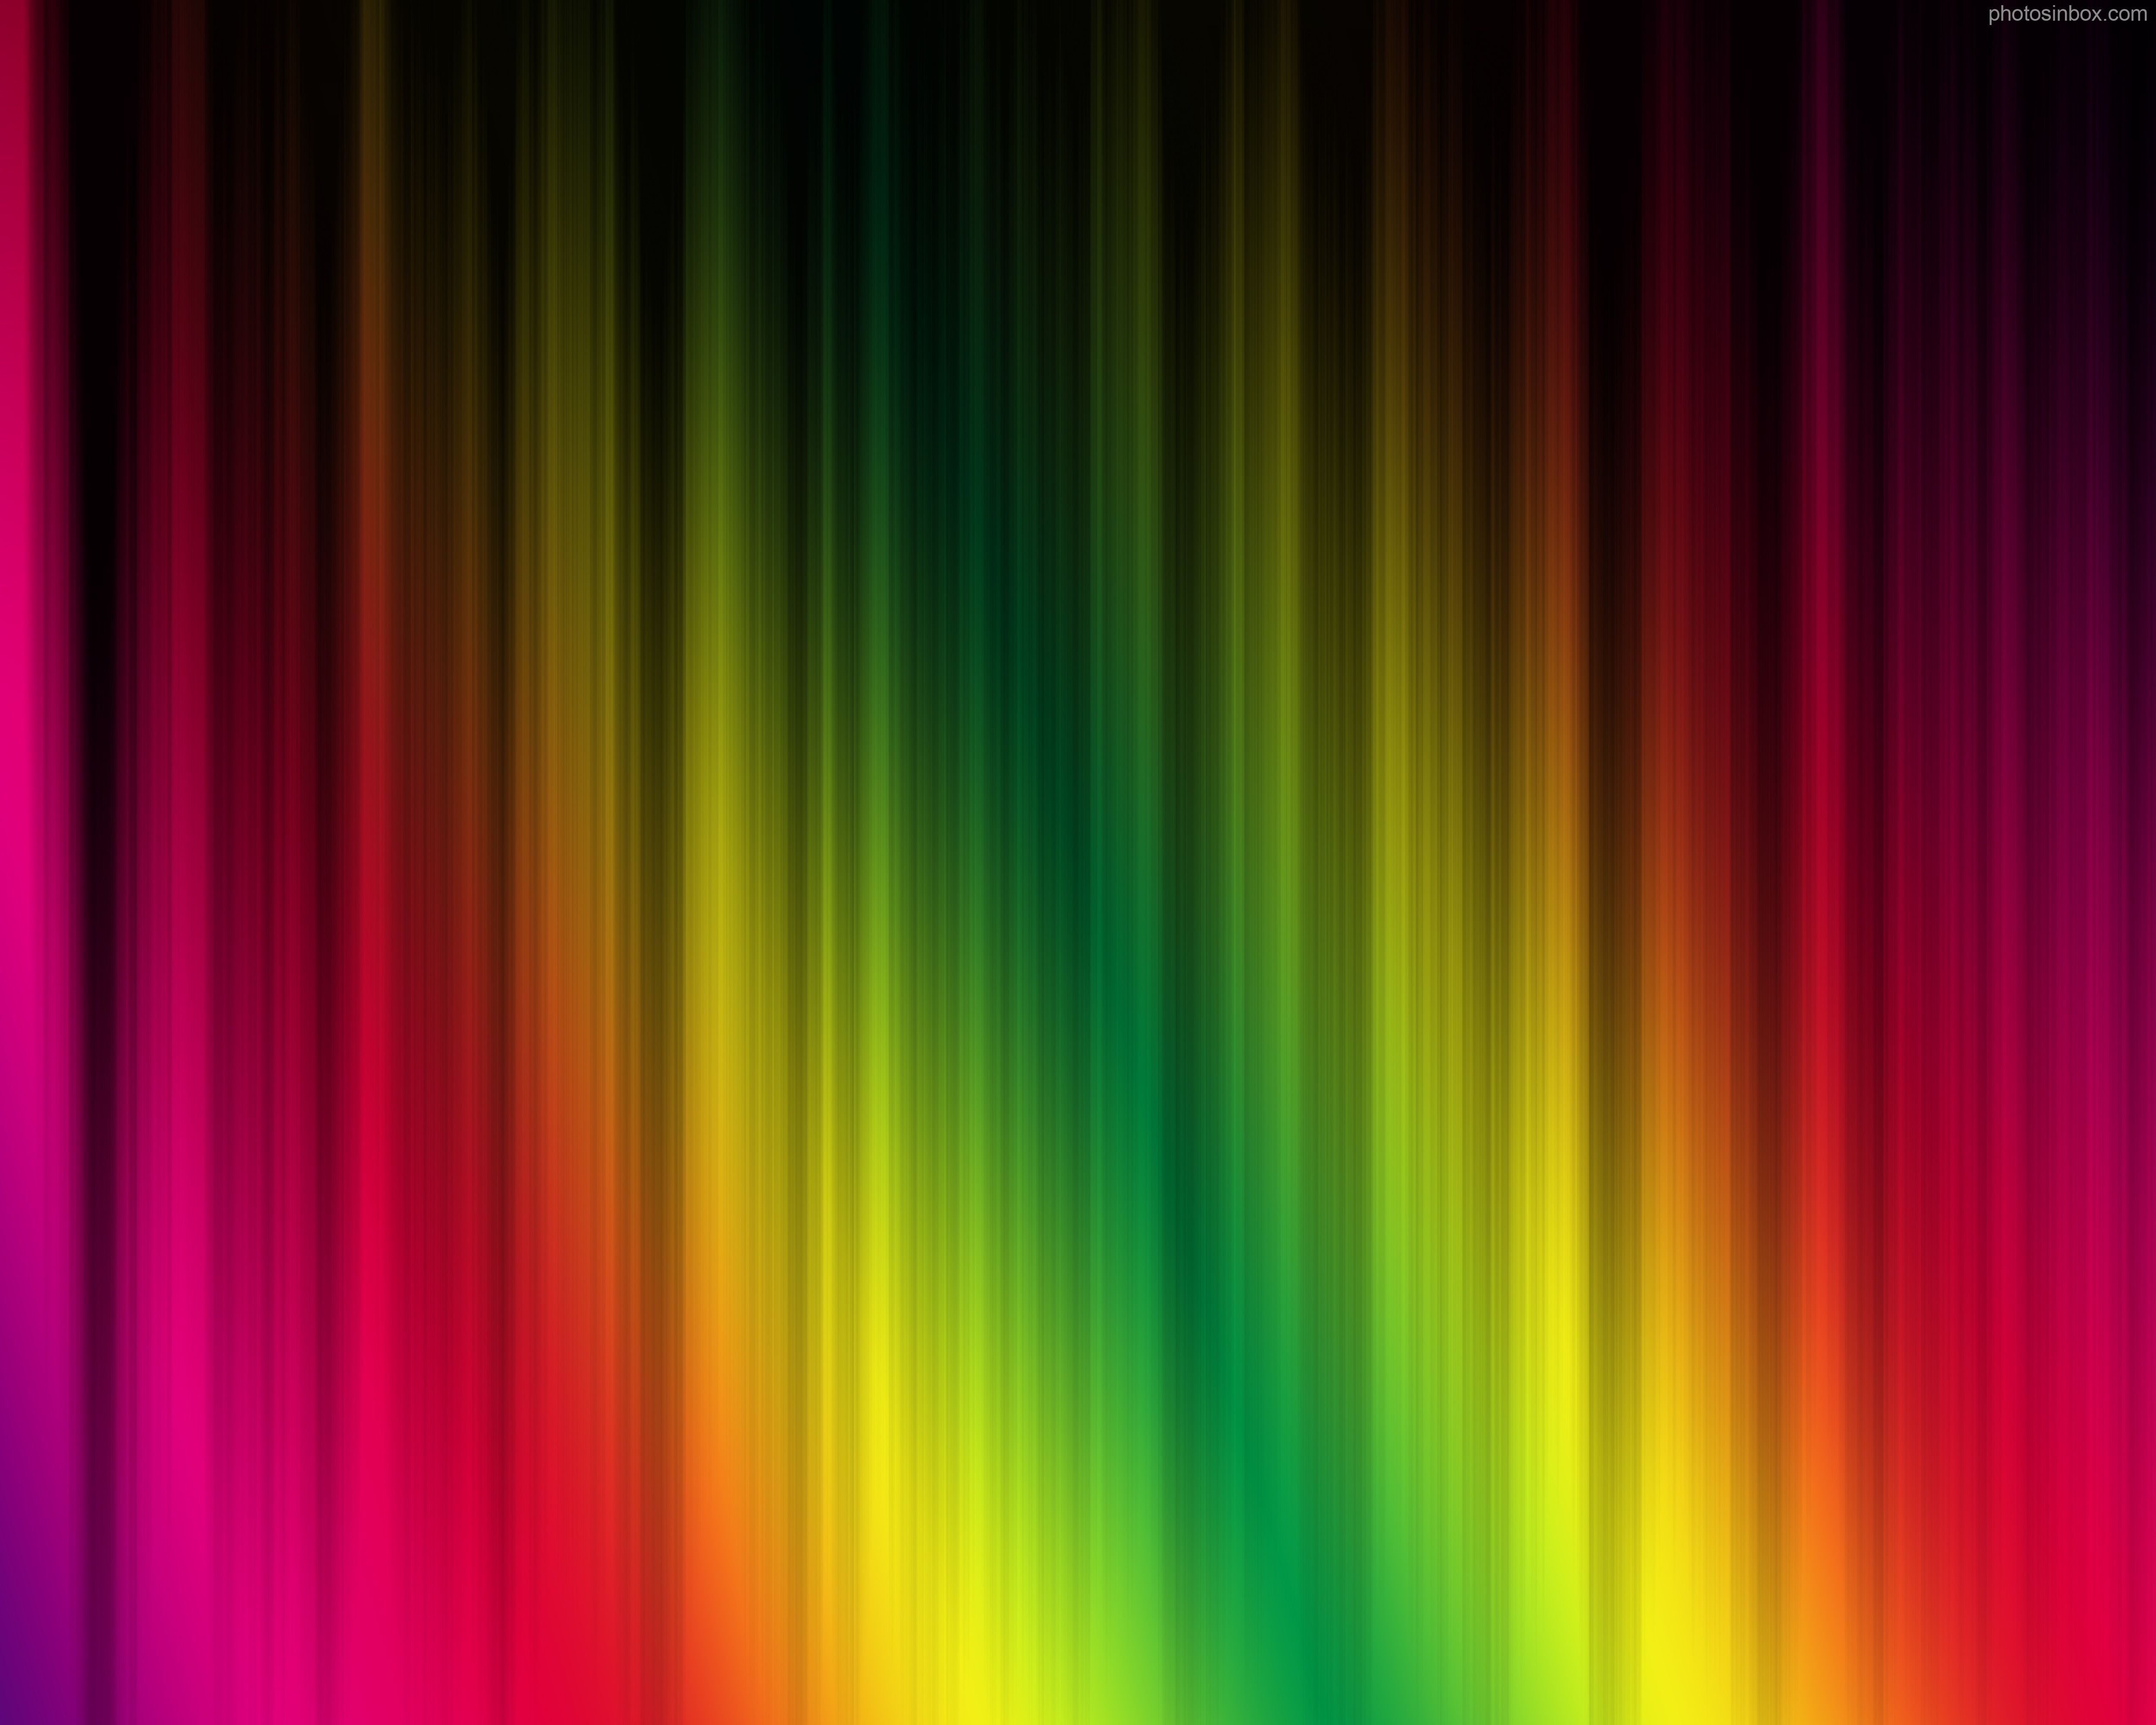 Background image and color - Color Vibrant Color Background